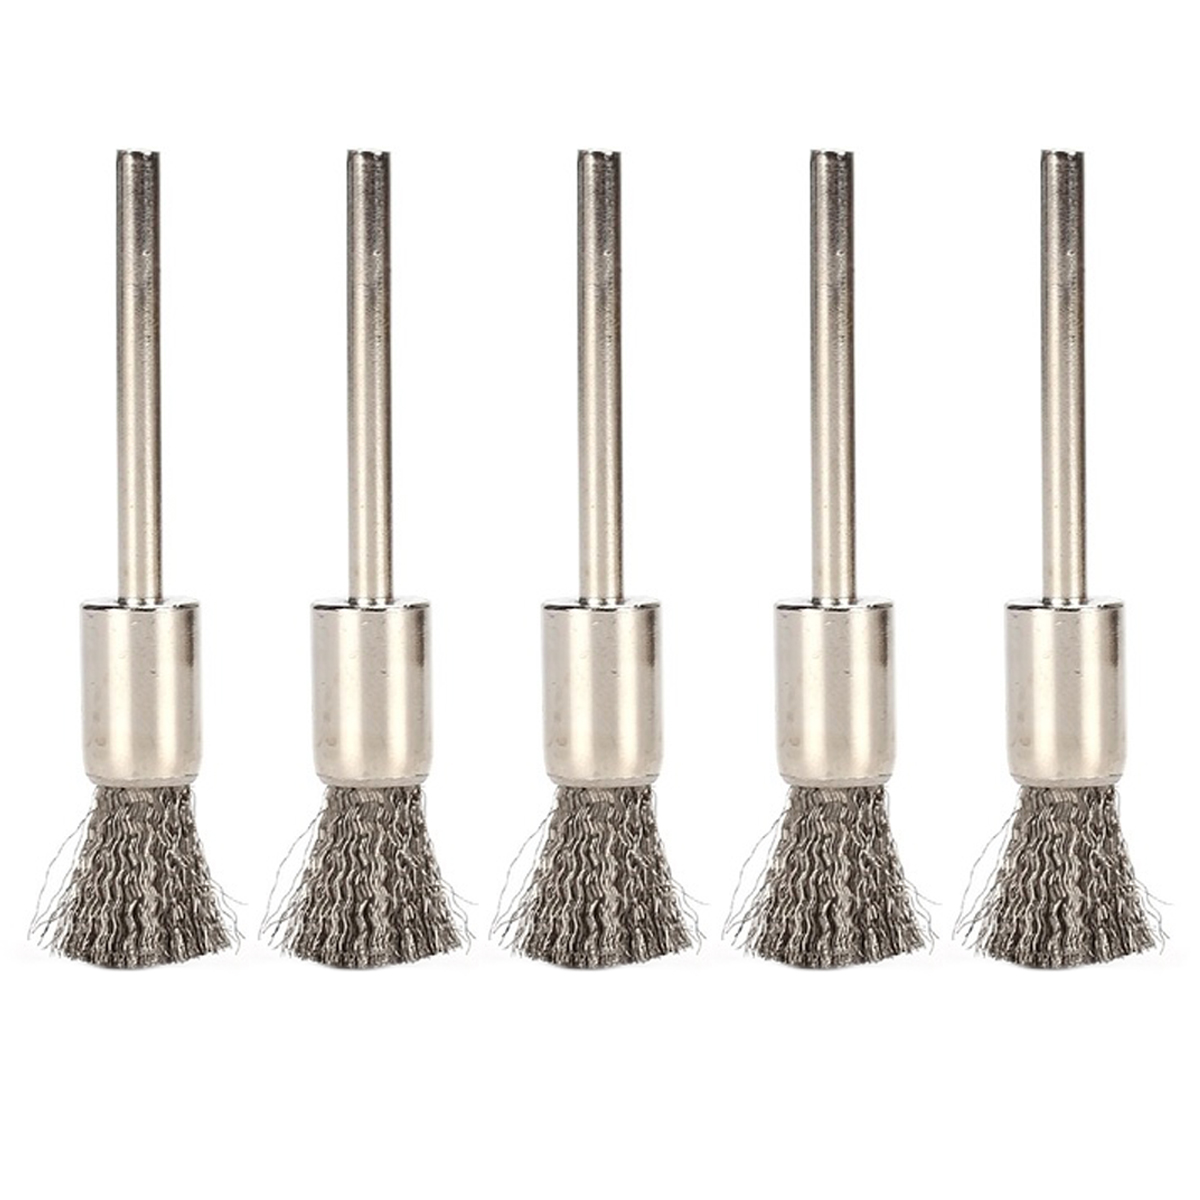 5pcs Cleaning Brush Atomizer Tanks Heating Wire Vape Accessories Coil Cleaner Steel Brush E-Cig DIY Tools For RDA RBA Rebuilda